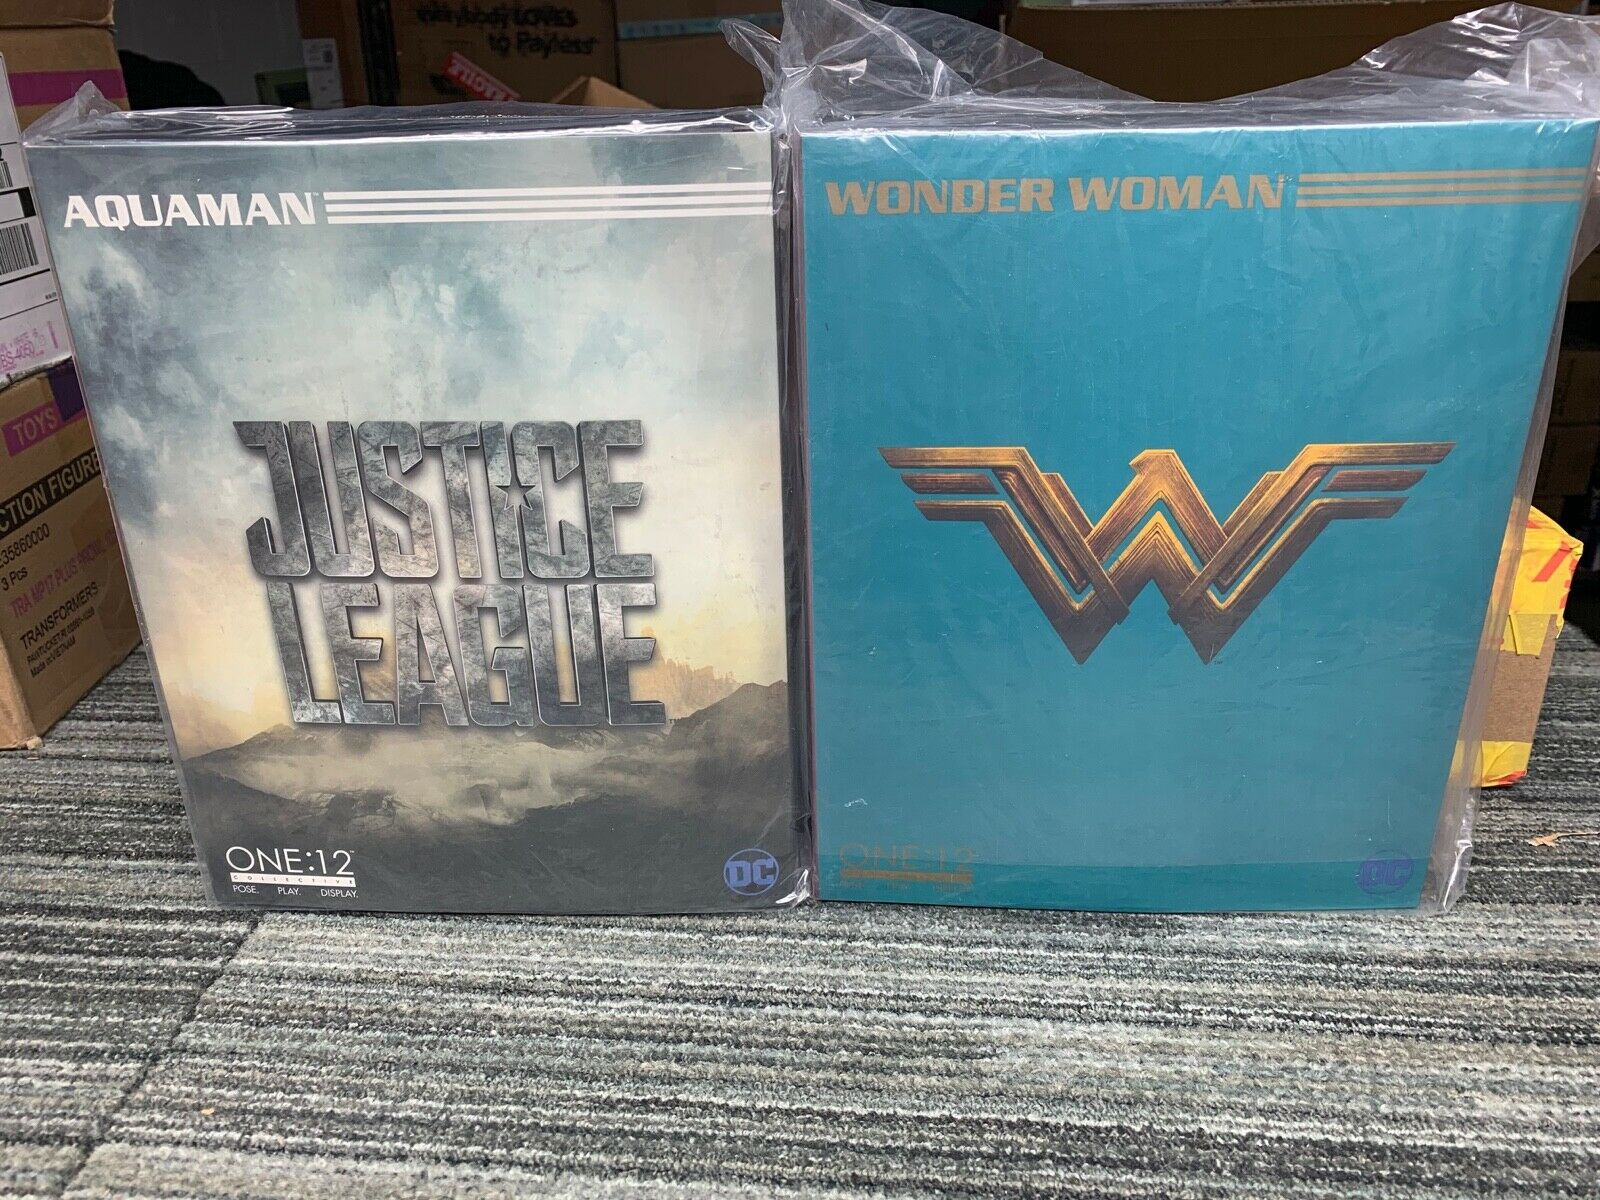 Mezco ONE 12 lot  AQUAuomo e WONDER donna justice league set  negozio all'ingrosso